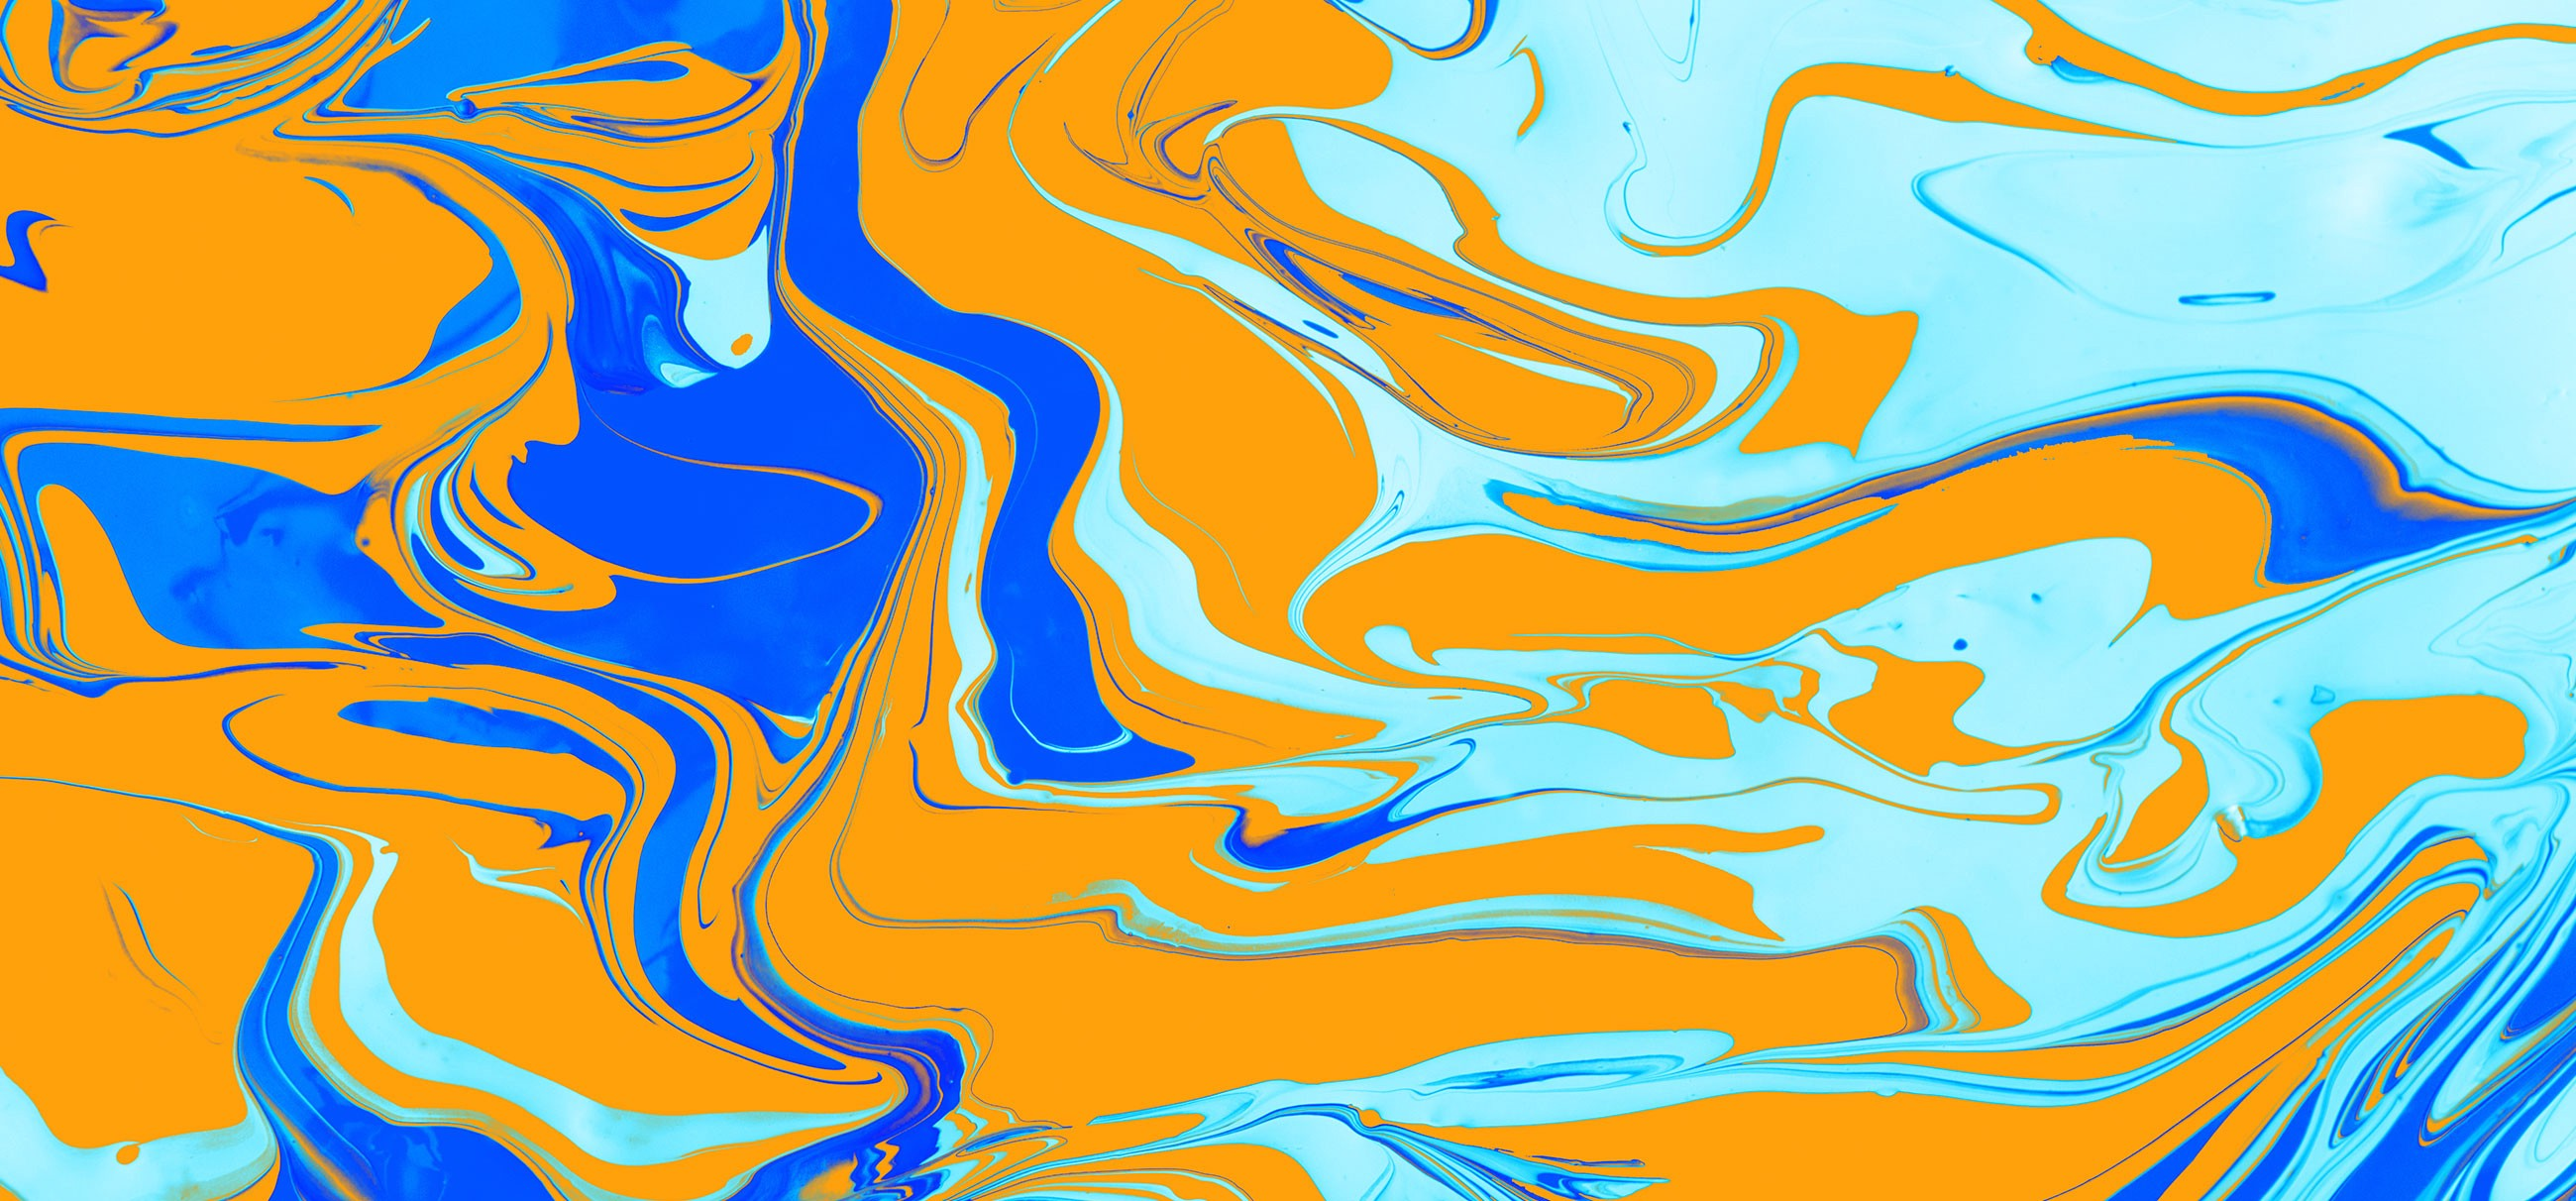 Orange swirls among a smaller amount of blue swirls